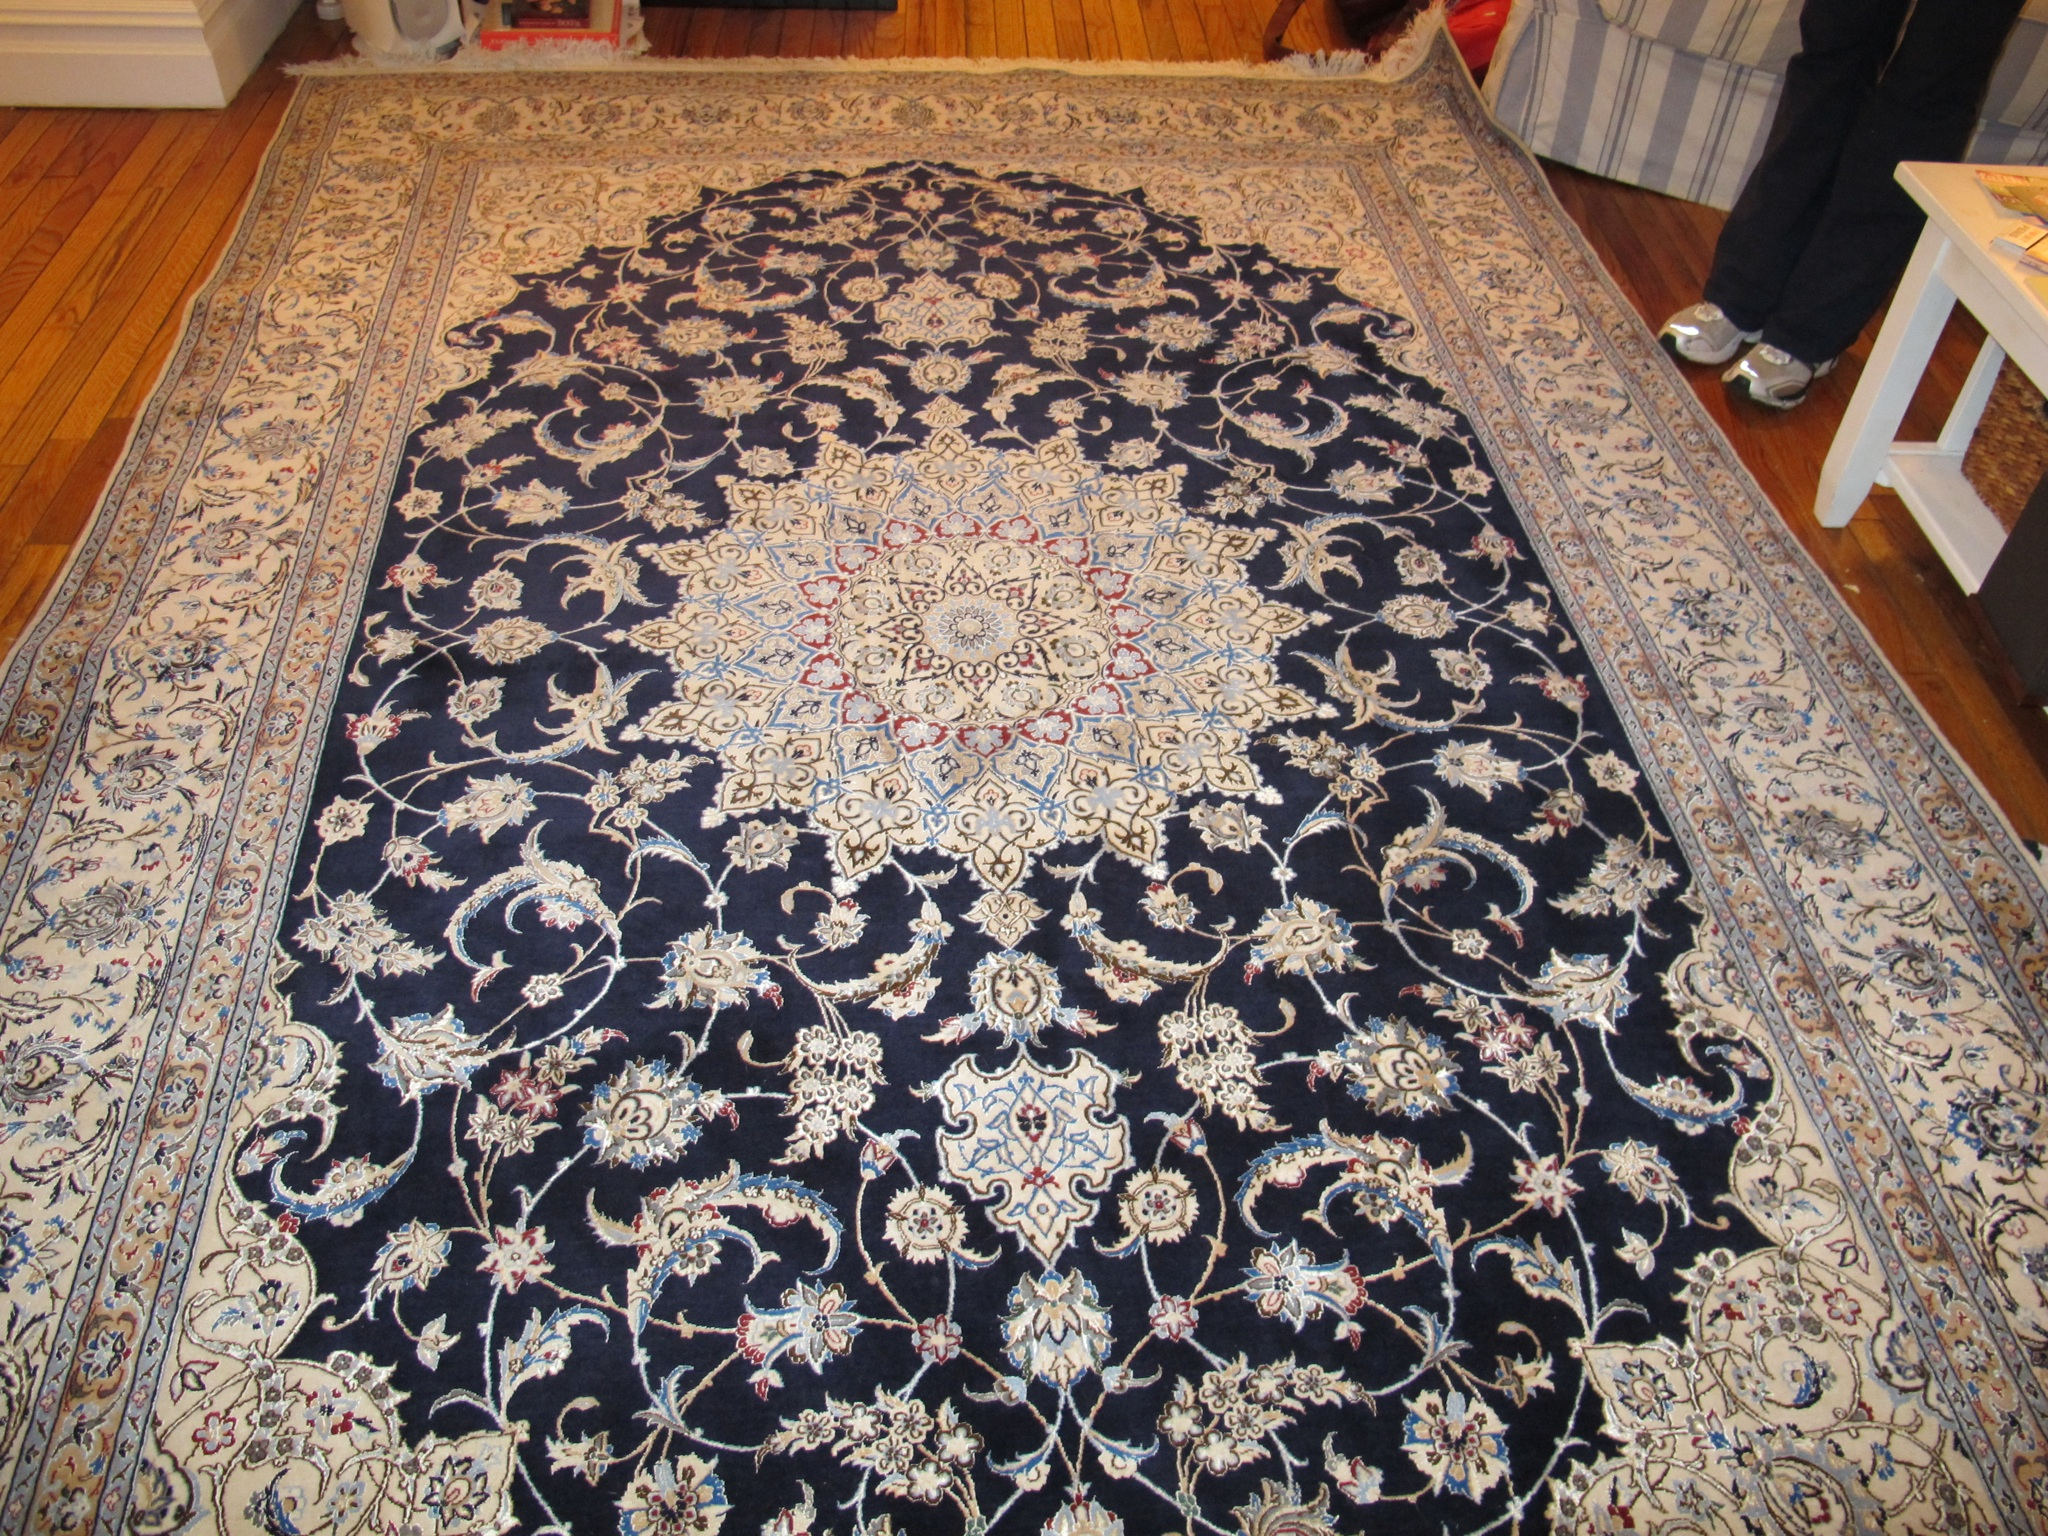 silk rug after stain removal